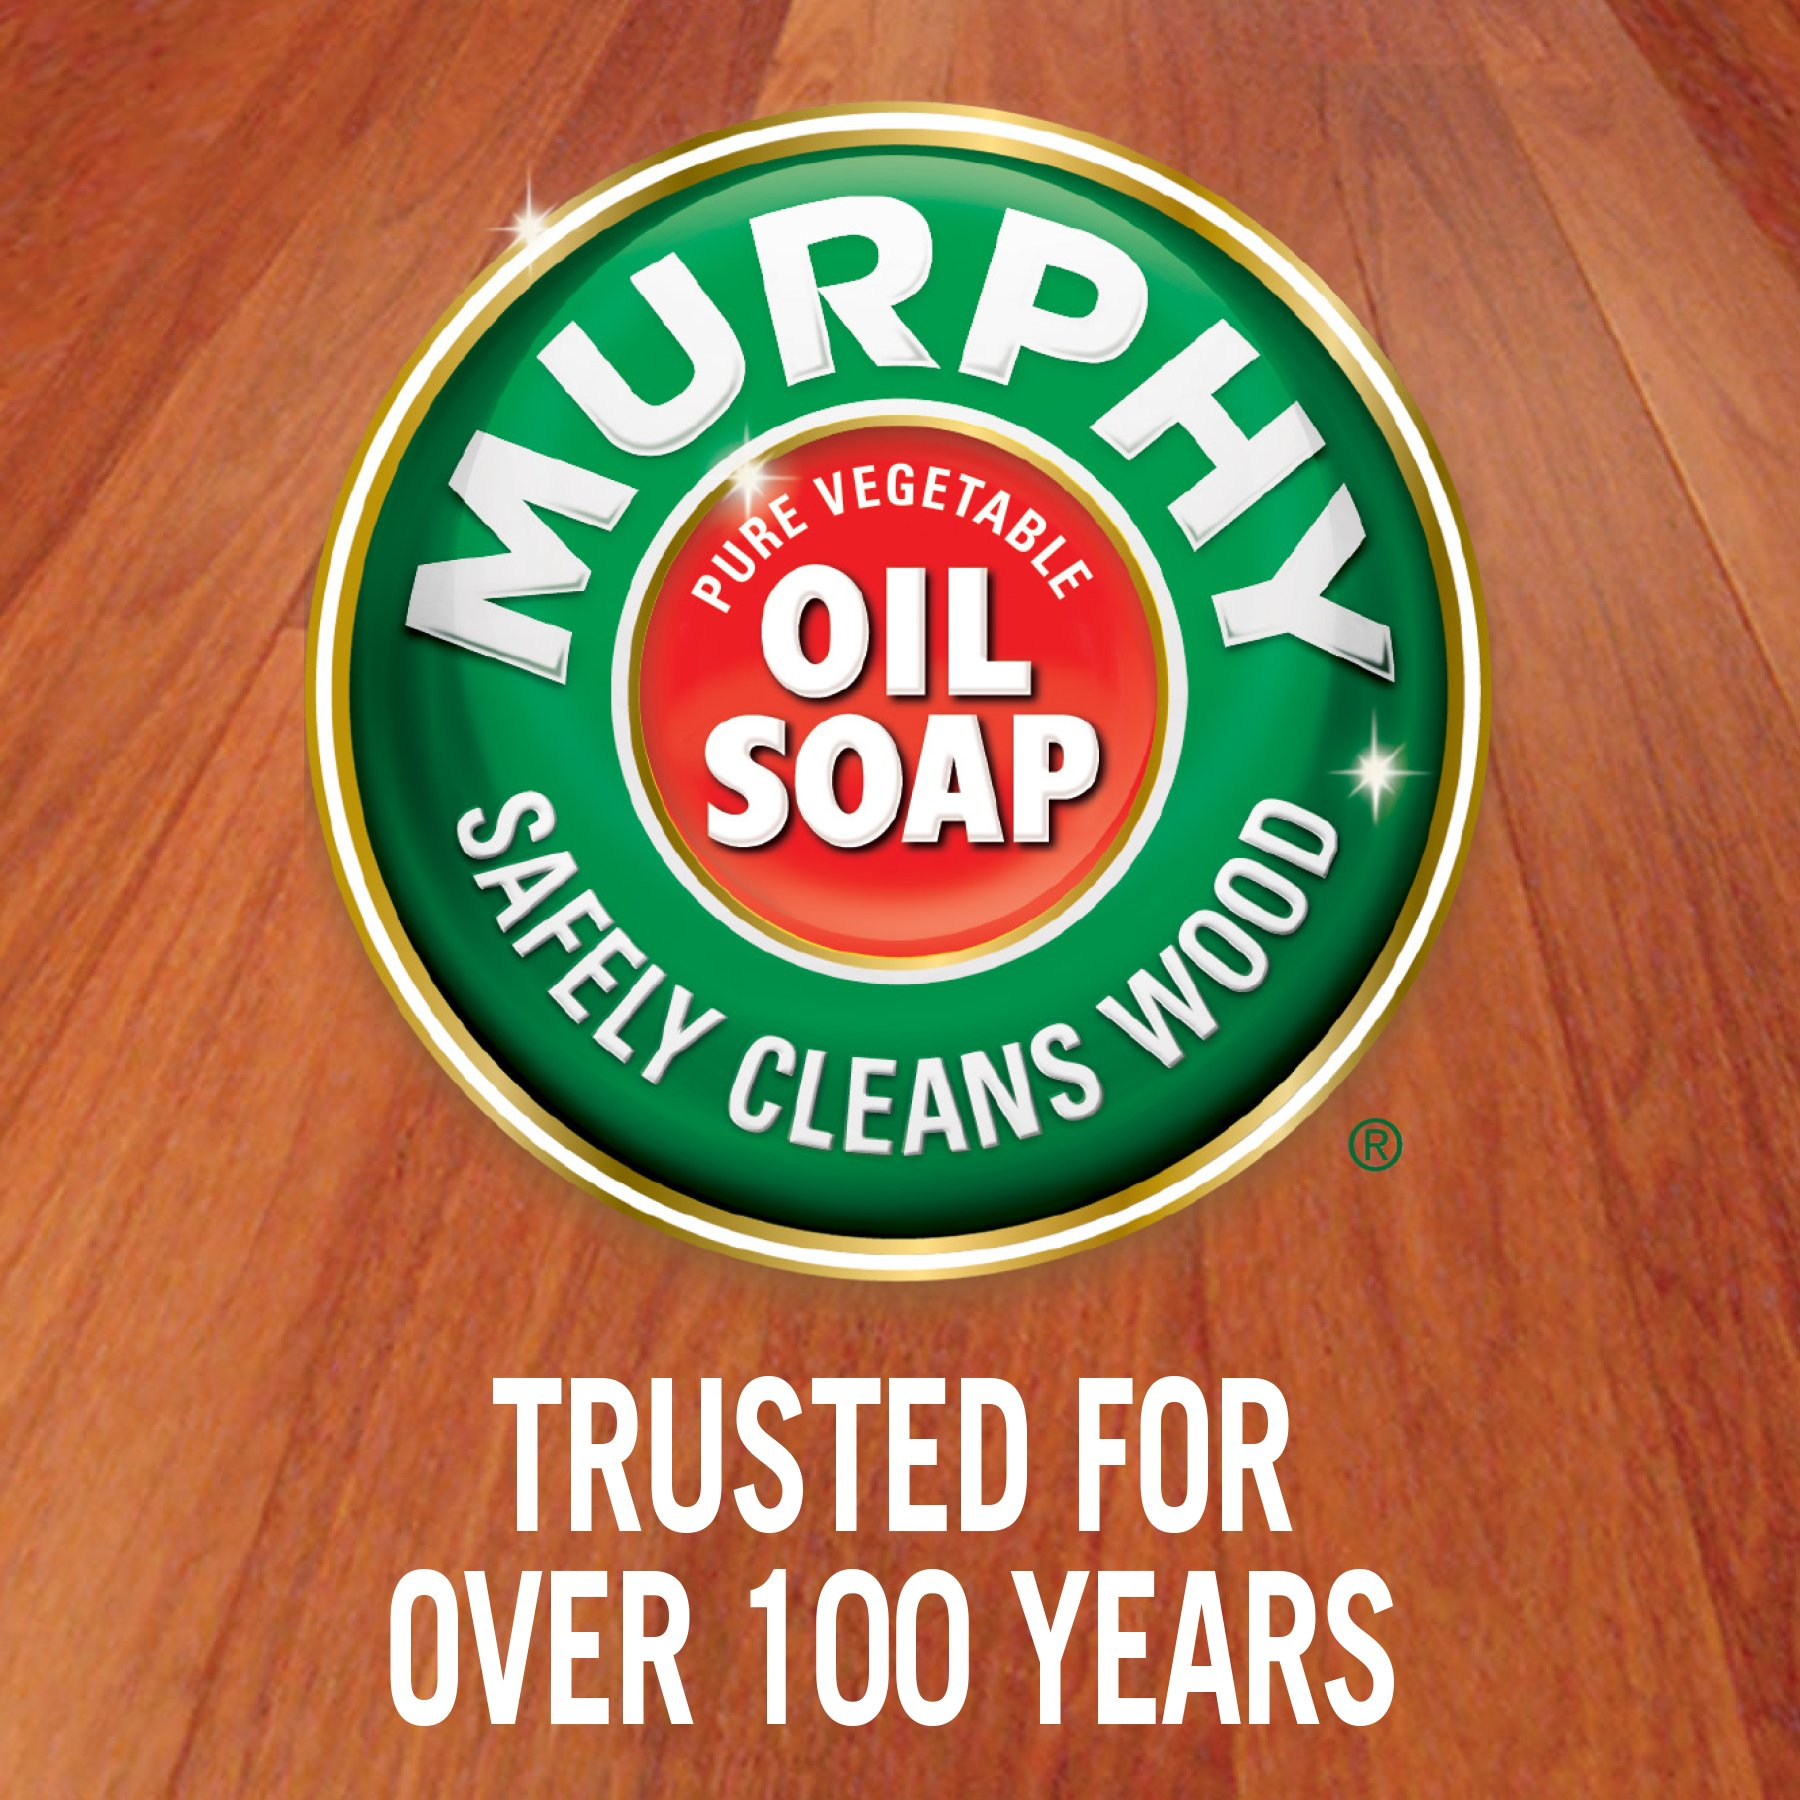 MURPHY OIL SOAP Wood Cleaner, Original, Concentrated Formula, Floor Cleaner, Multi-Use Wood Cleaner, Finished Surface Cleaner, 128 Fluid Ounce (US05480A) by Murphy Oil (Image #5)